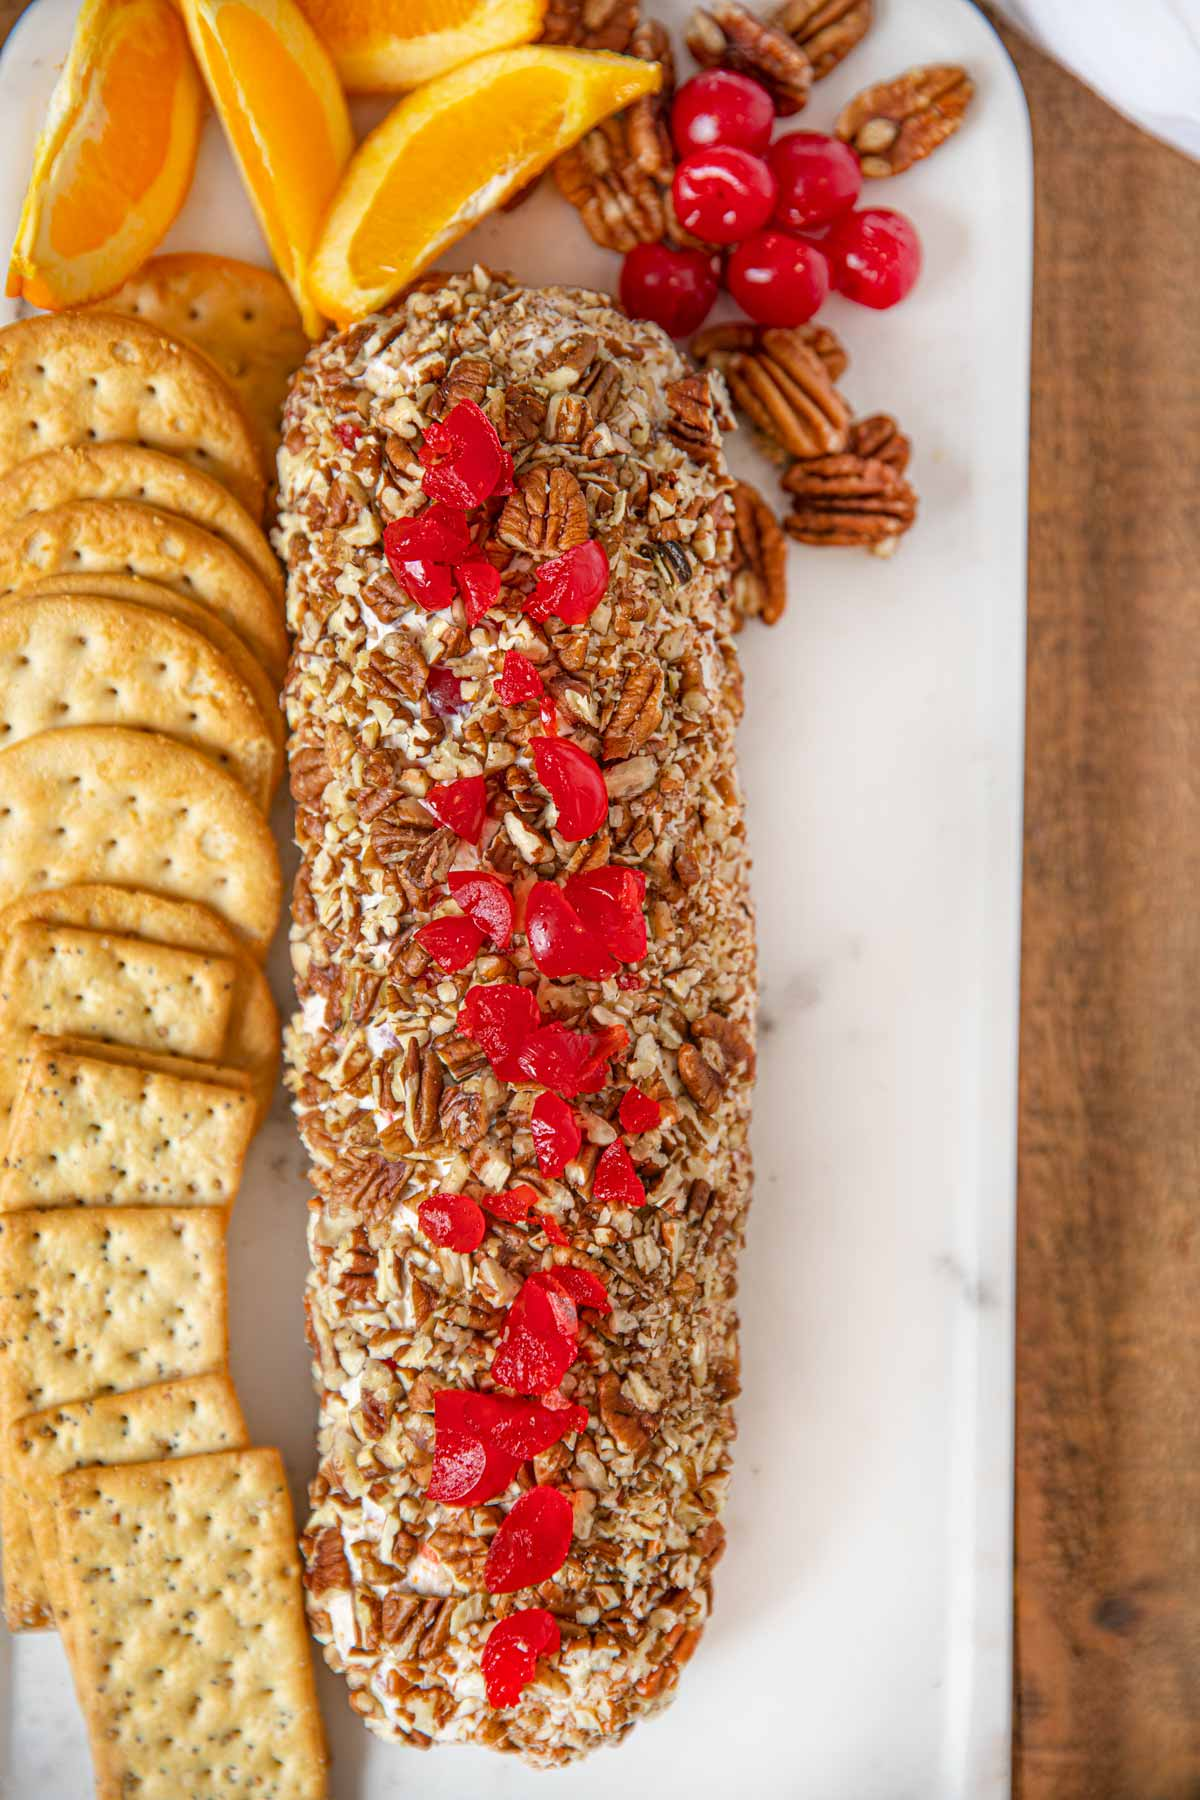 Cheese Log with Cherries and Pecans and Orange